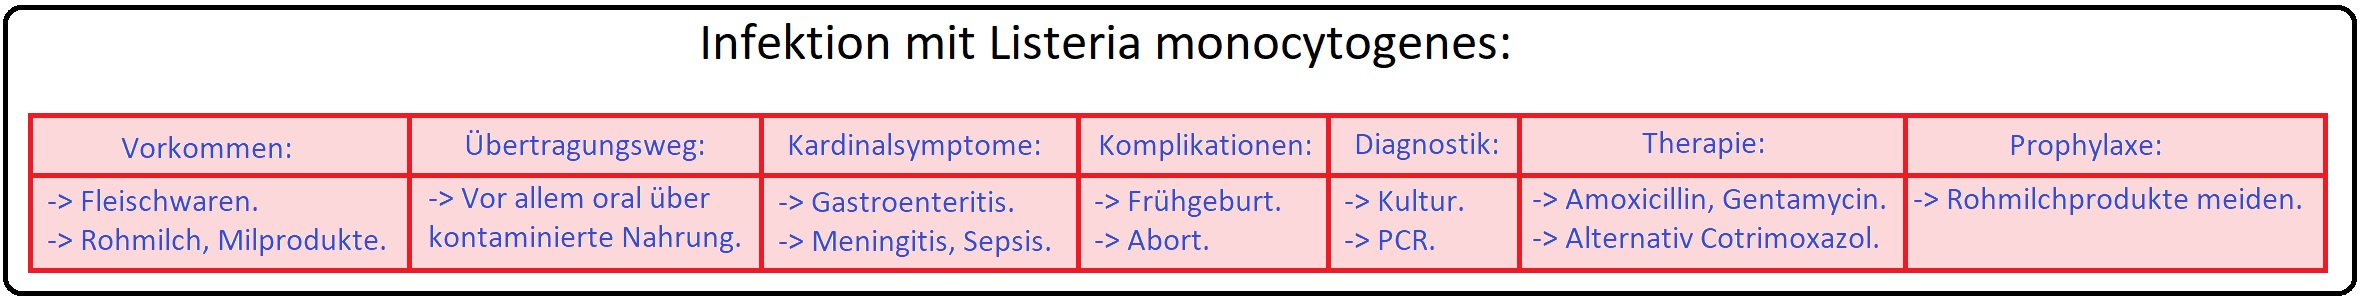 1167 Infektion mit Listeria monocytogenes